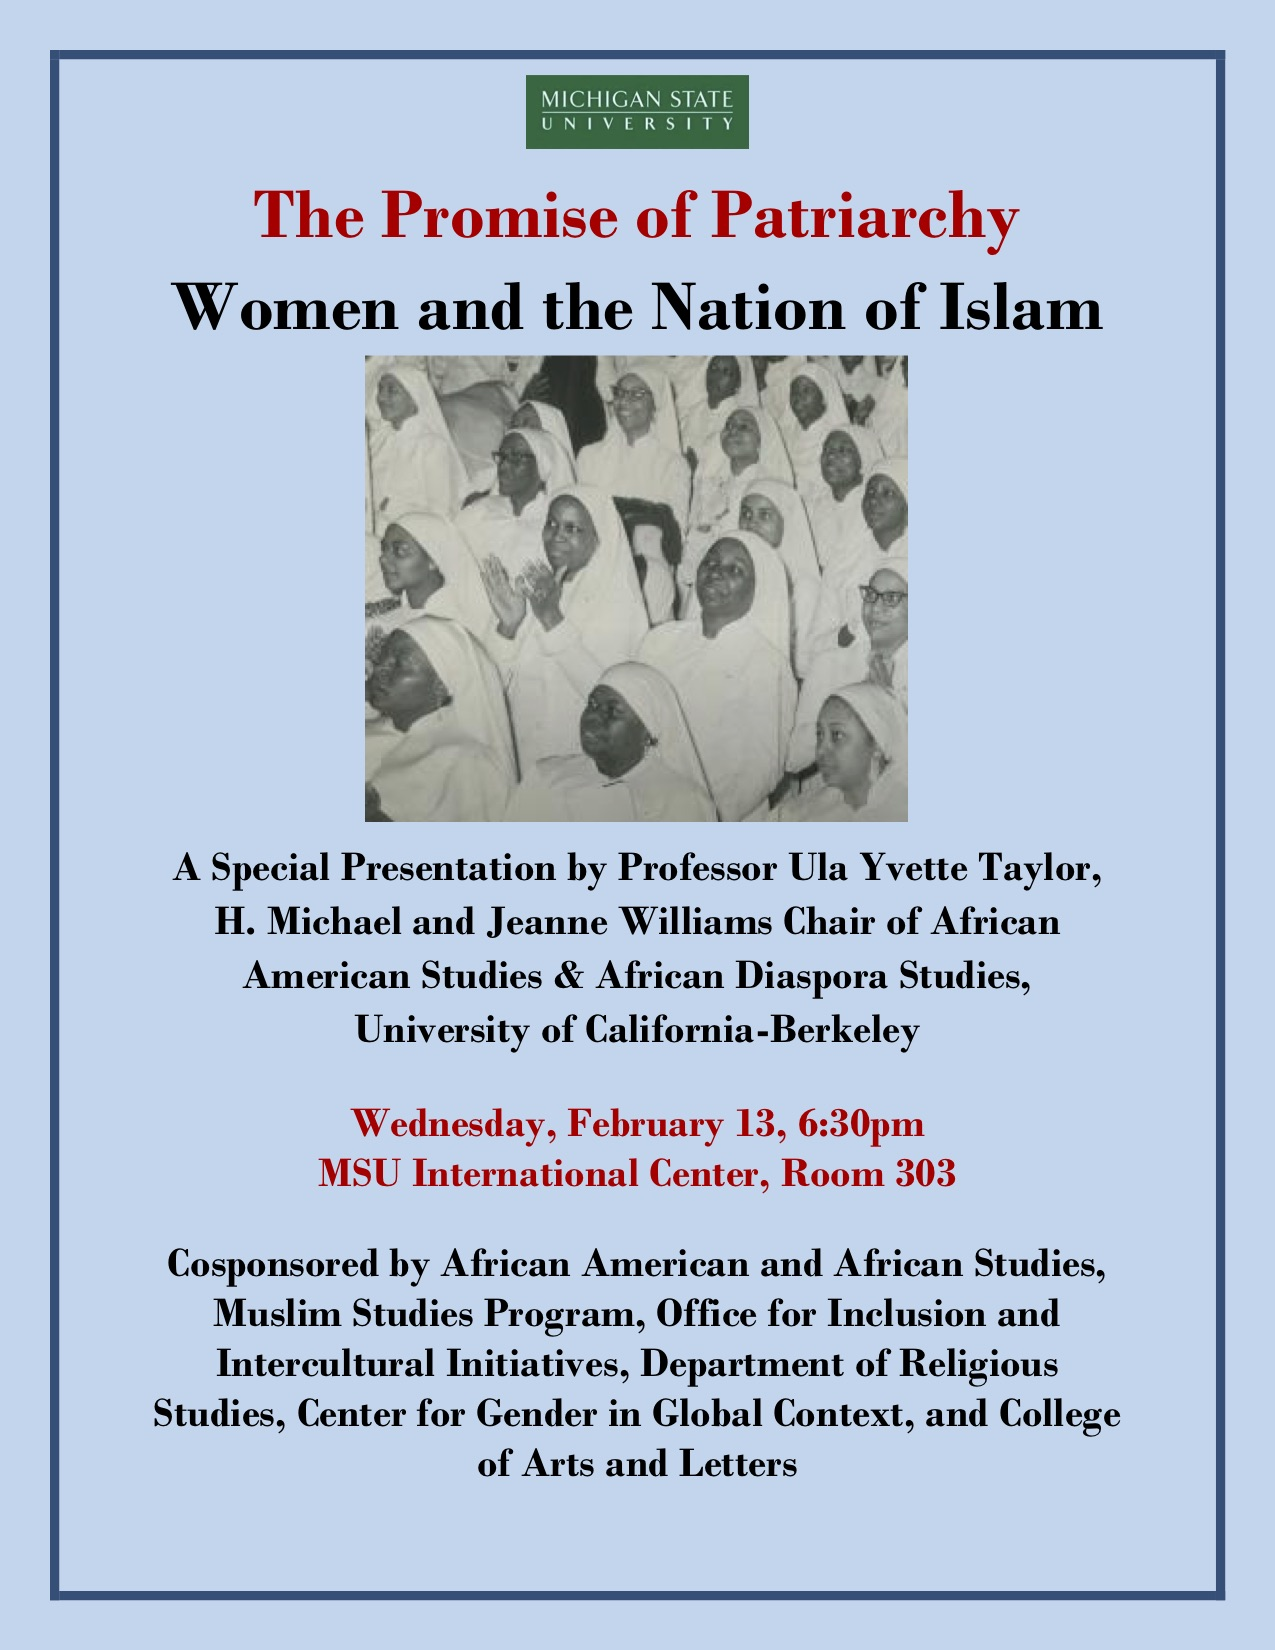 The Promise of Patriarchy: Women and the Nation of Islam @ MSU International Center, Room 303 | East Lansing | Michigan | United States